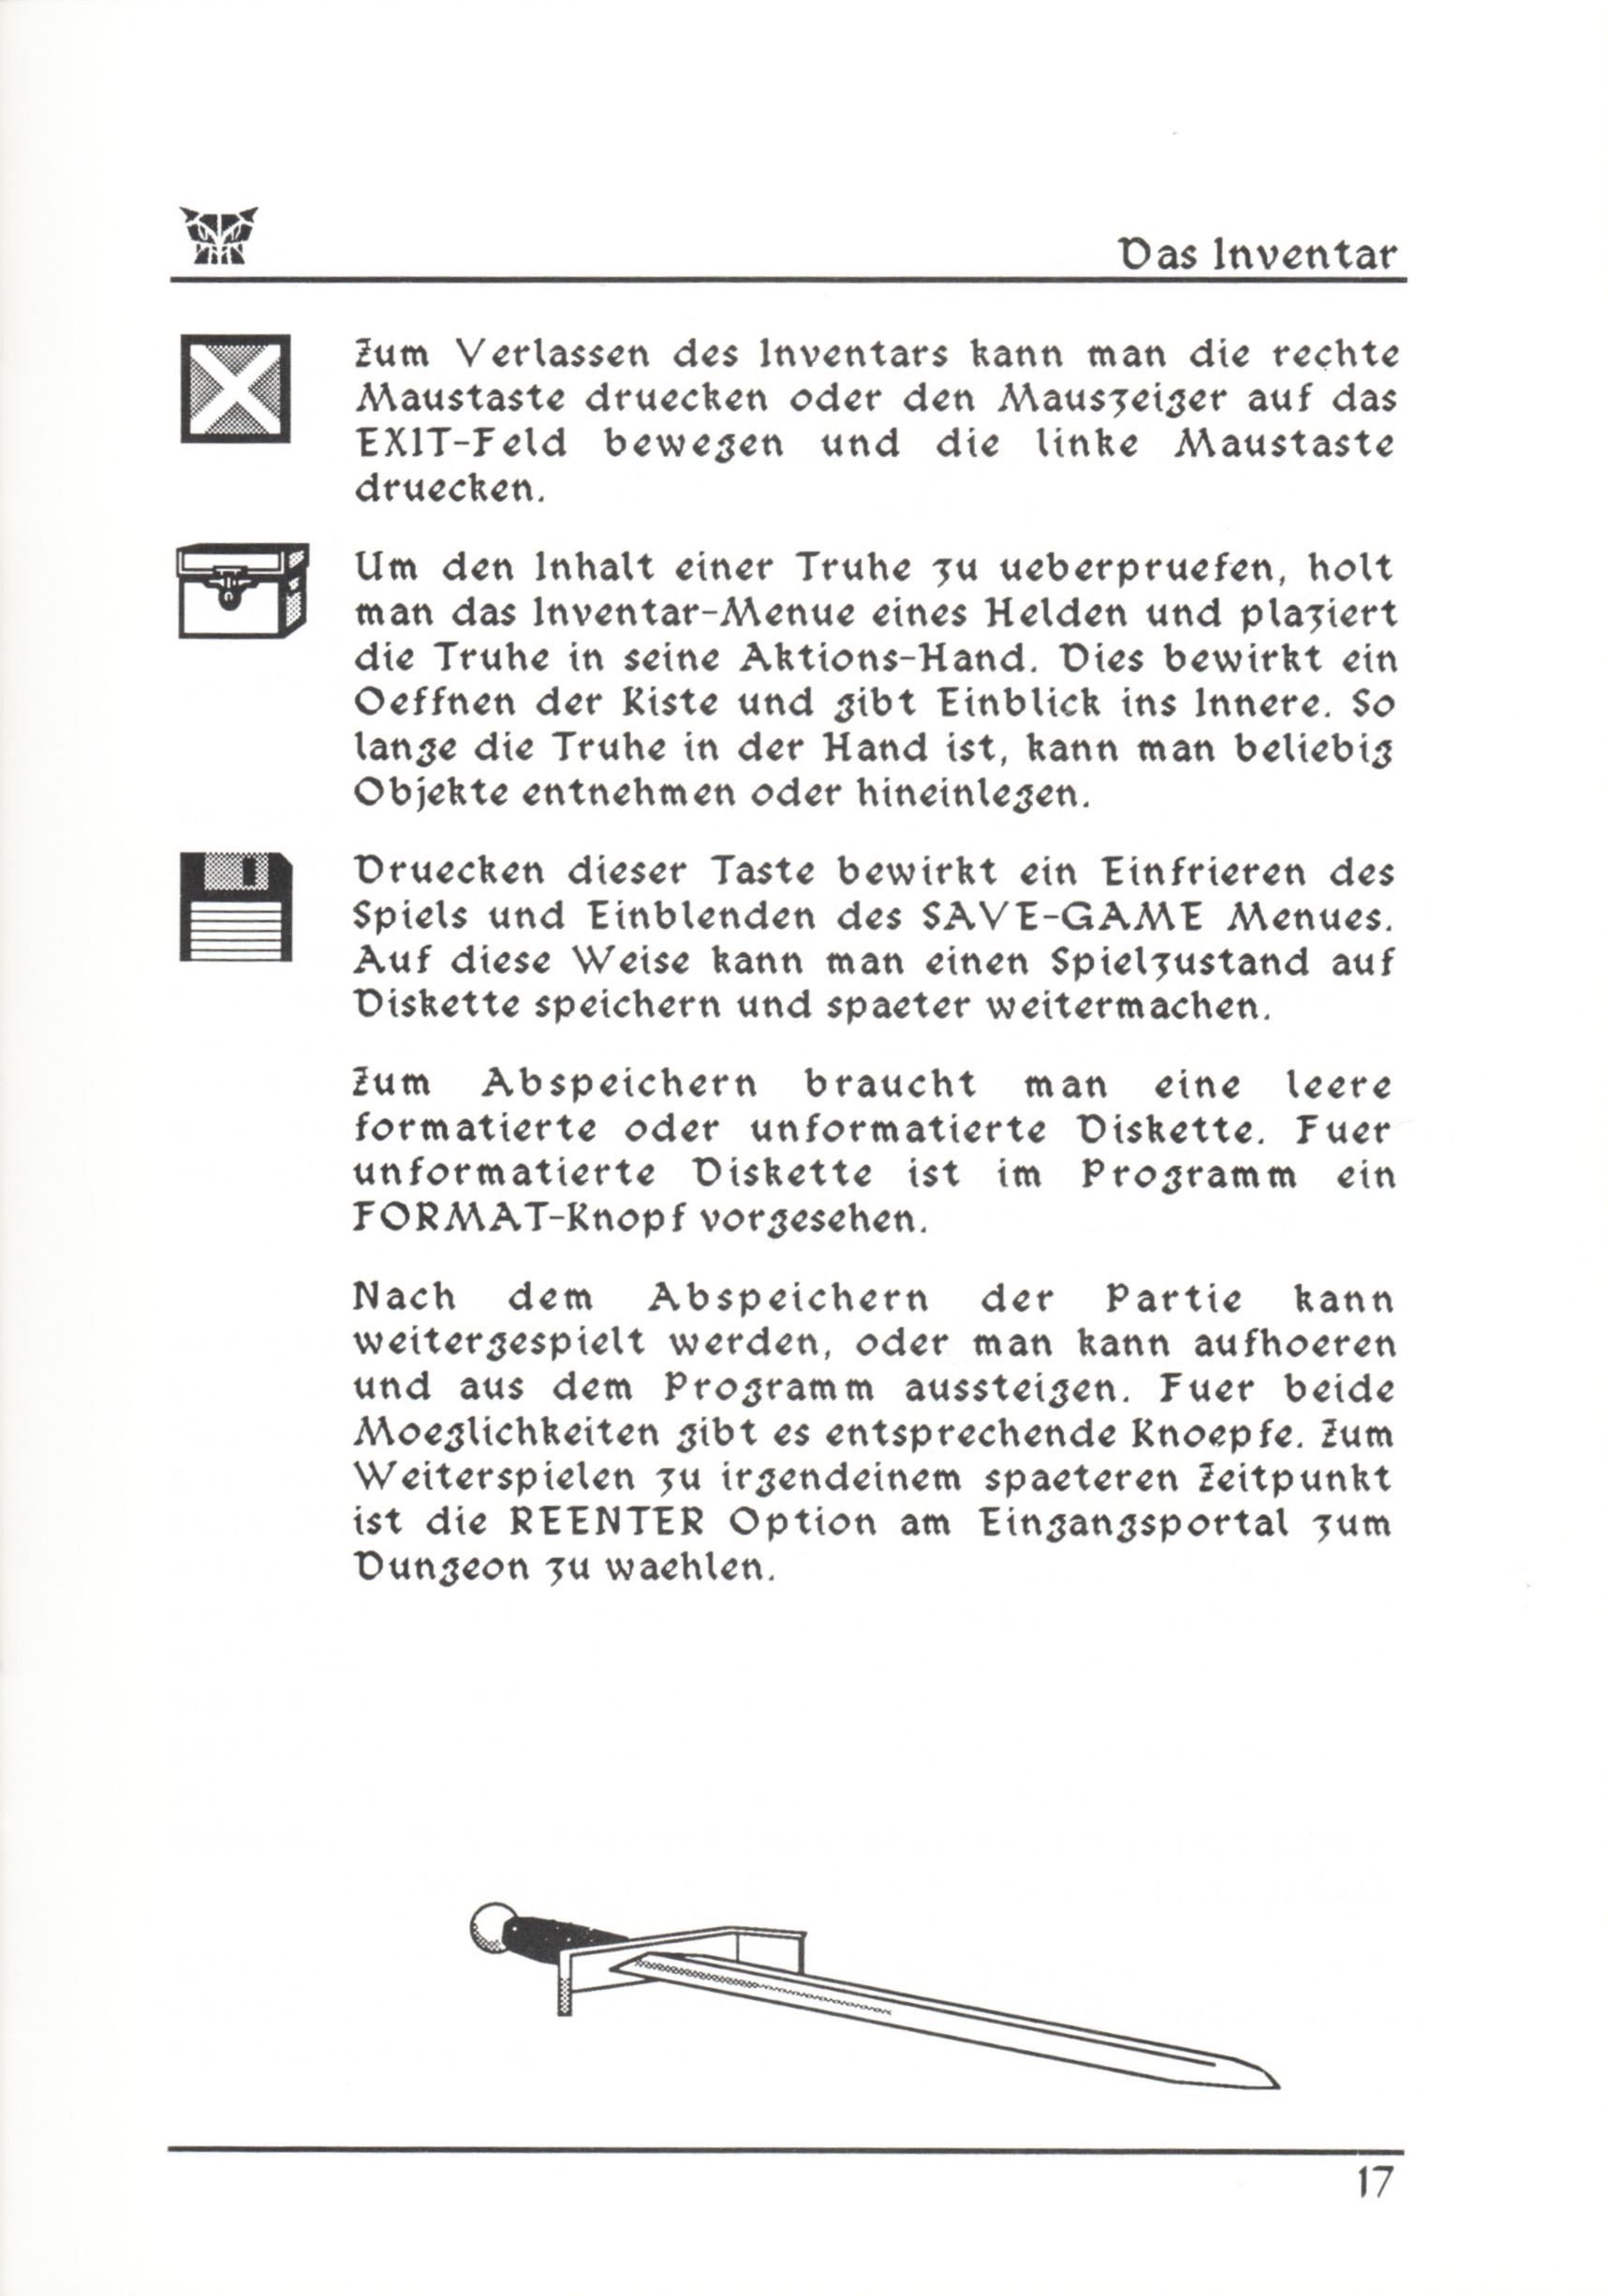 Game - Dungeon Master - DE - PC - Psygnosis - Manual - Page 043 - Scan